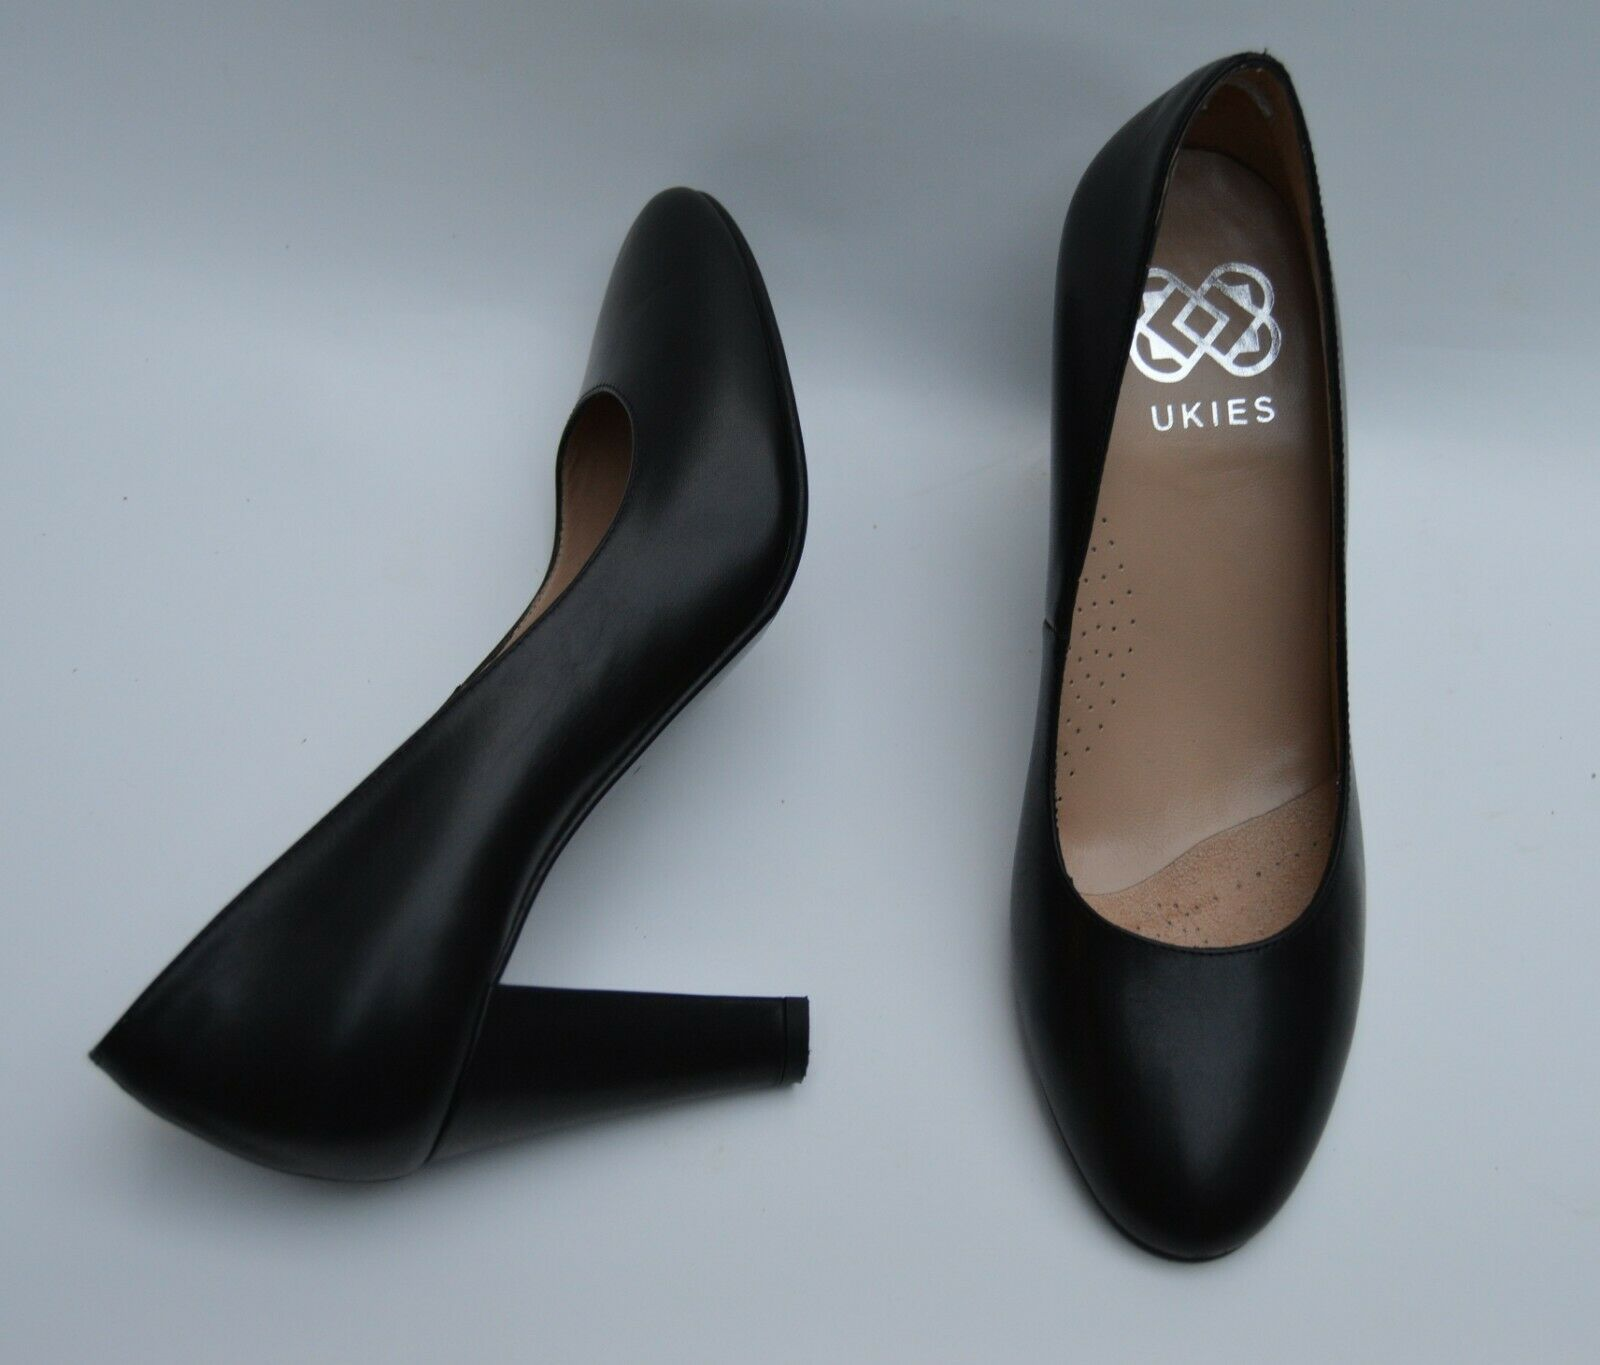 UKIES Marine solid black women's pump shoes Size 7M Made in Spain Nano Gel